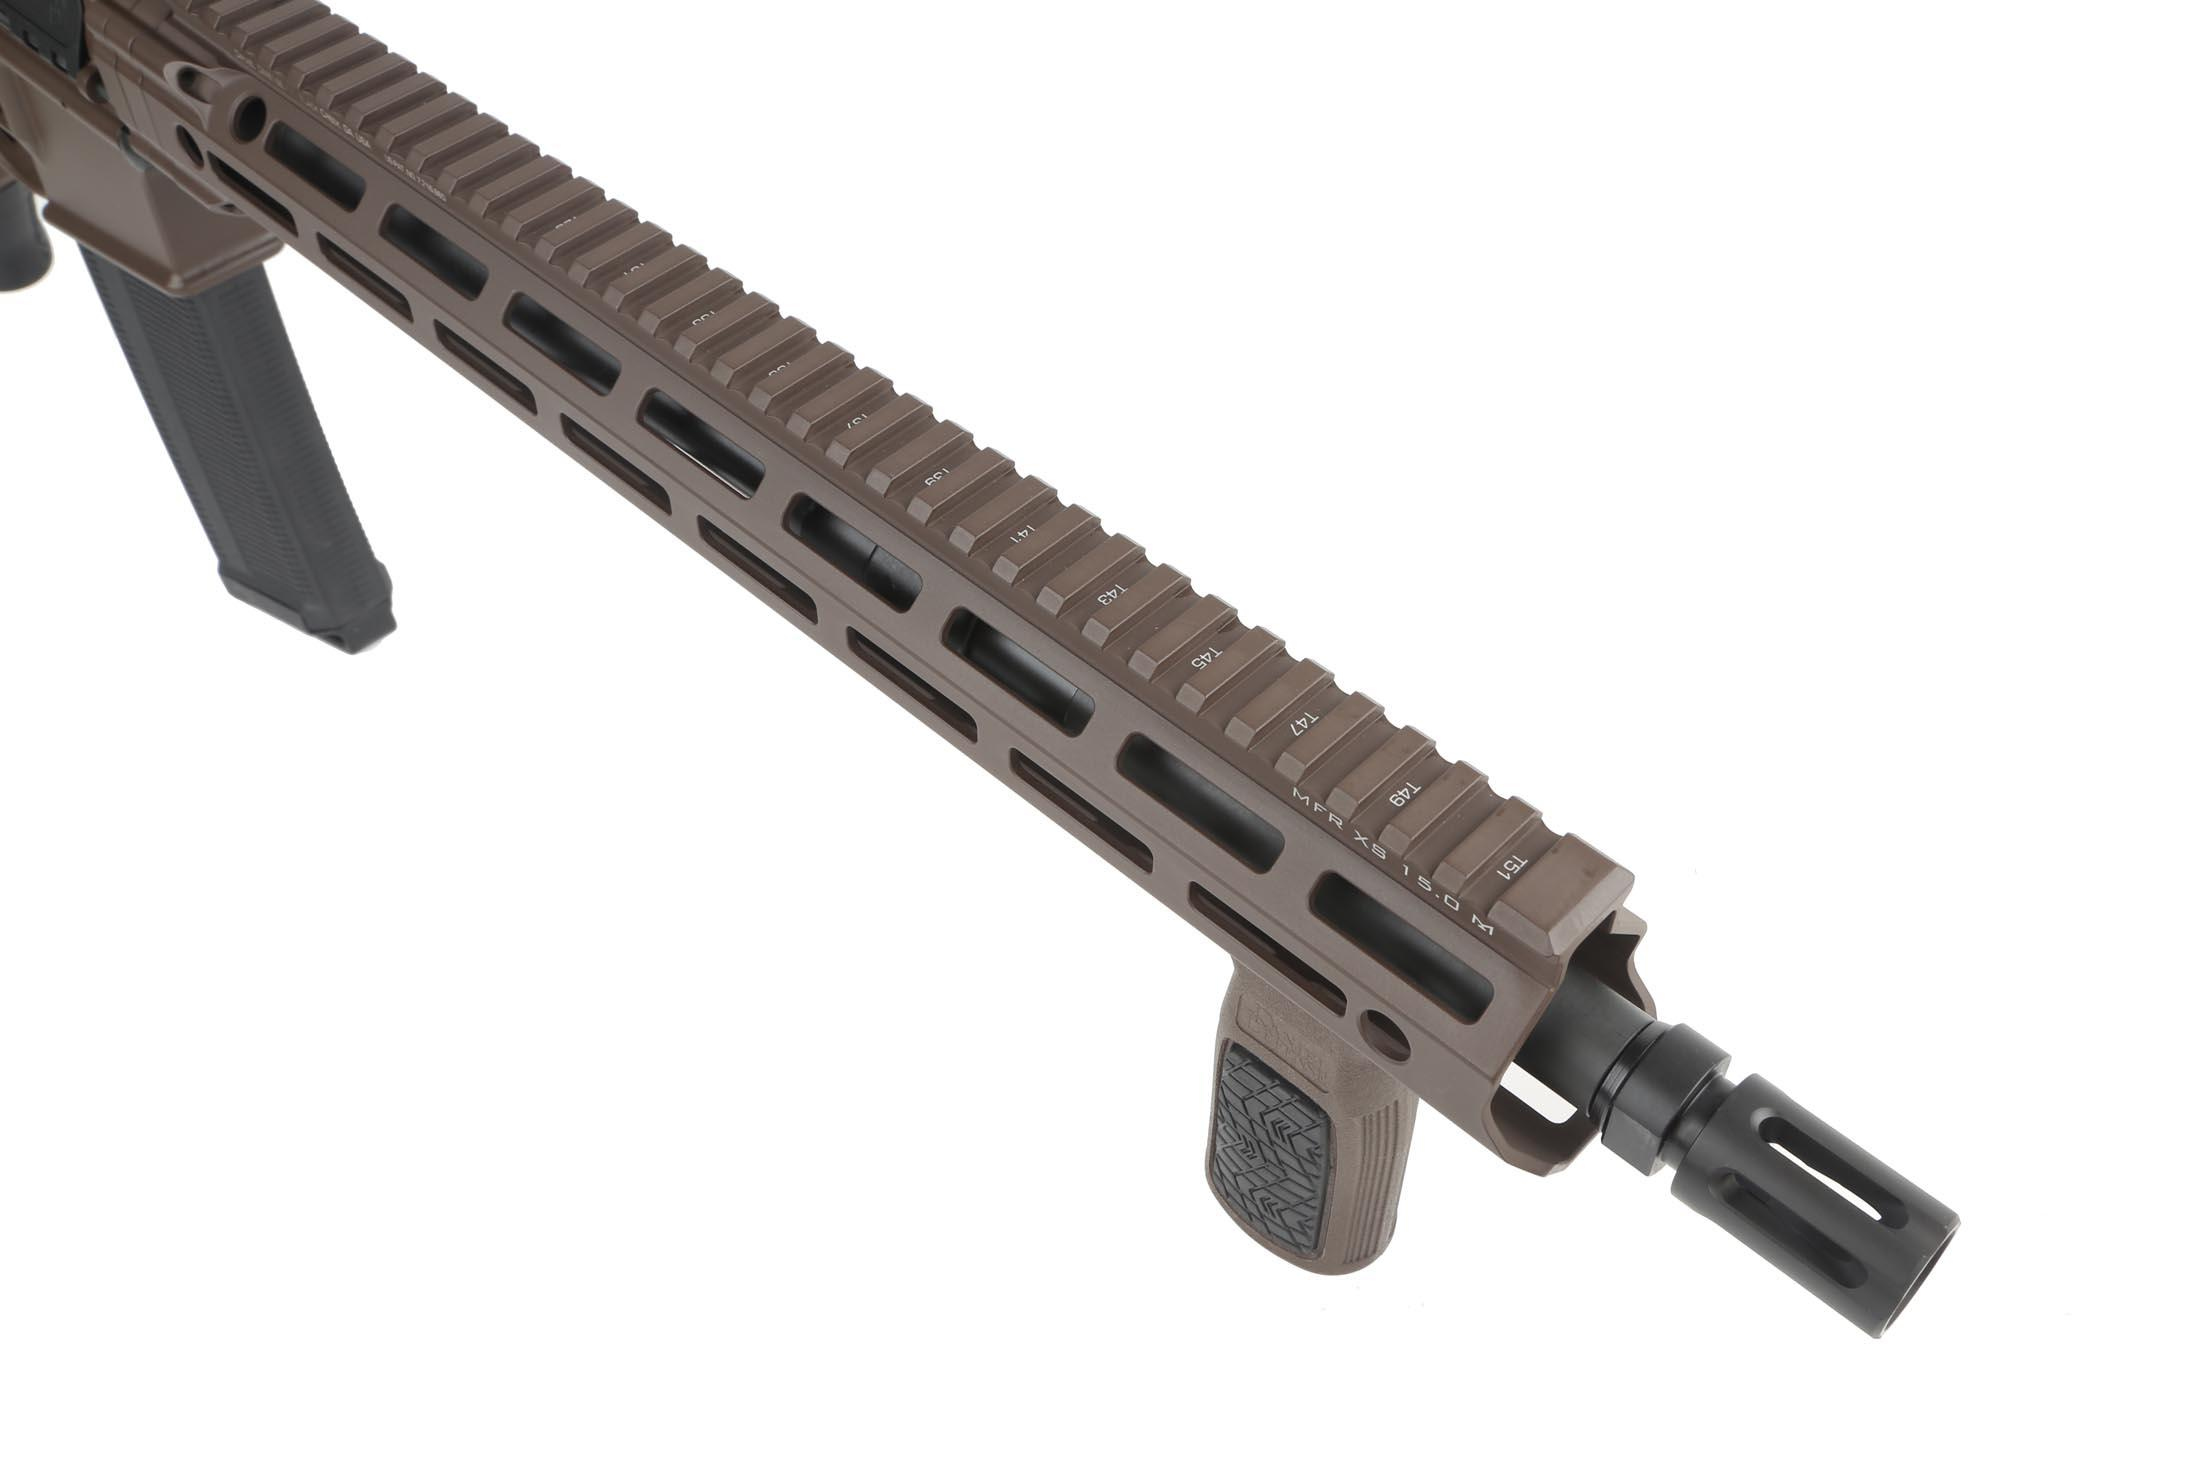 The Daniel Defense DDM4v7 AR15 features a 16 inch cold hammer forged barrel with A2 flash hider